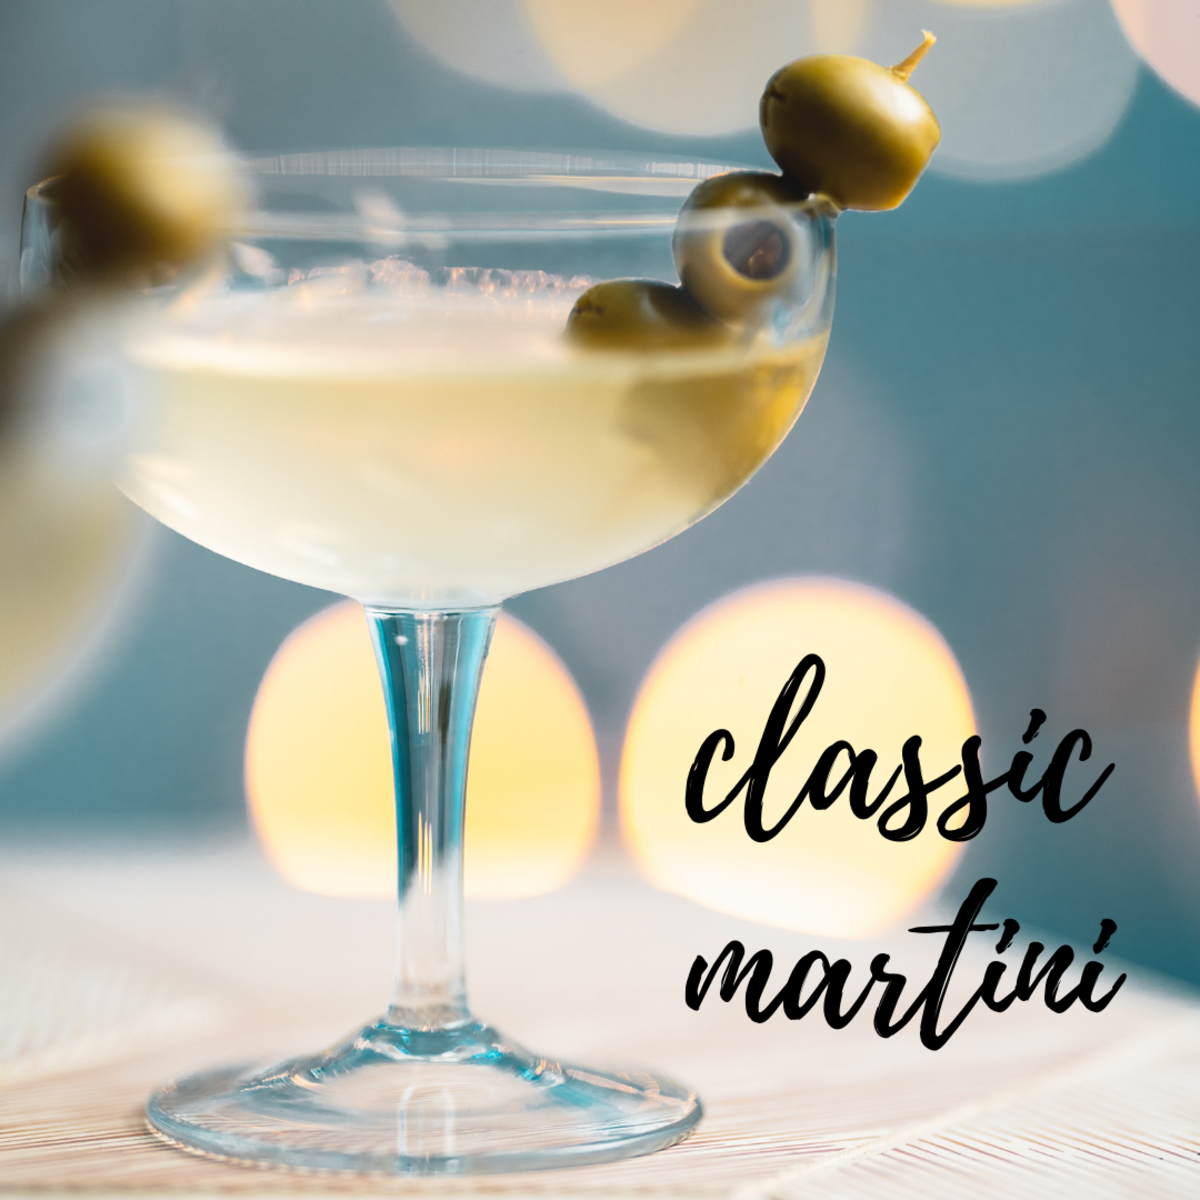 Shaken or stirred, the martini is a timeless classic.